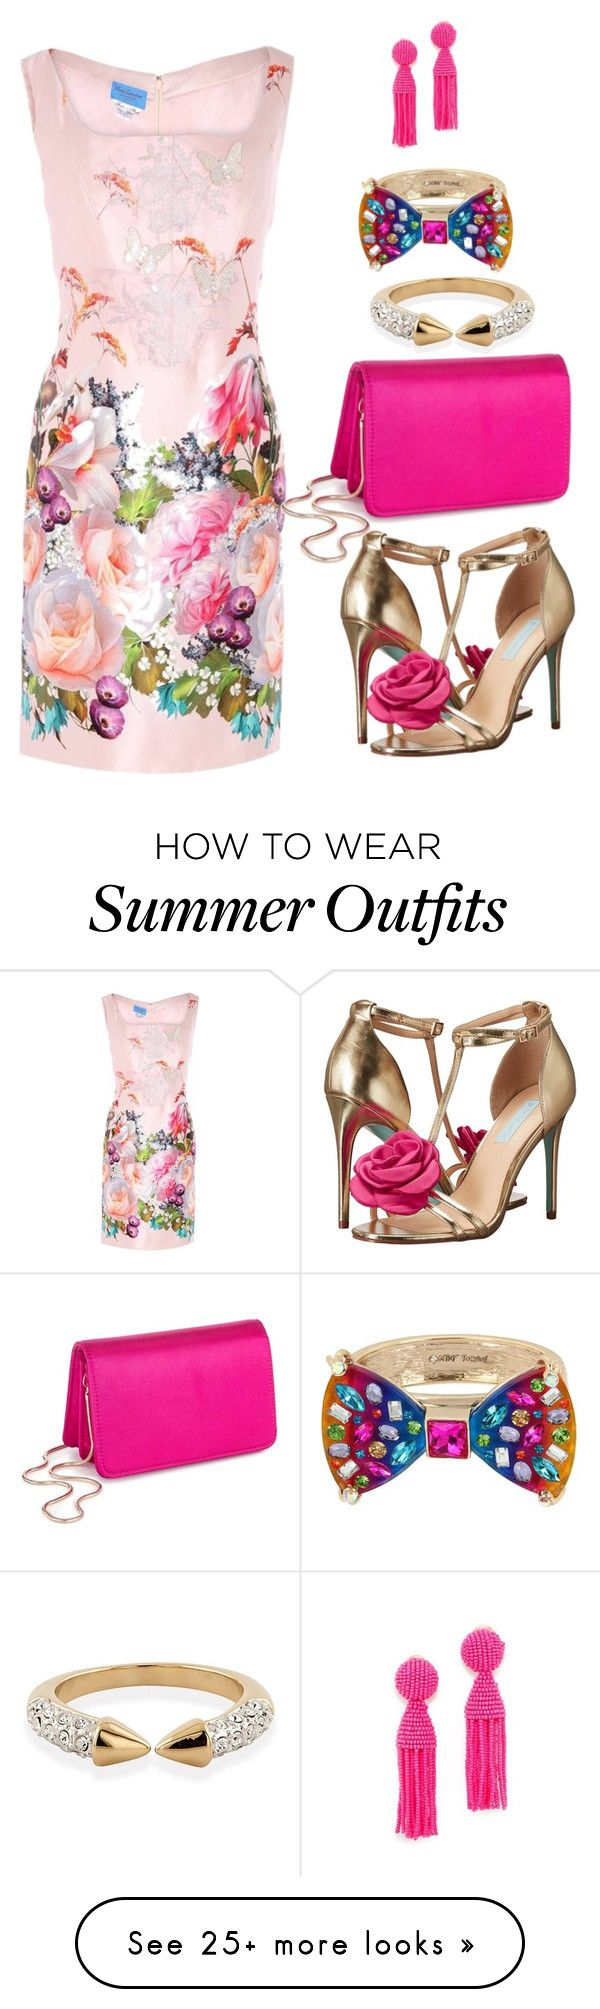 """""""Summer Wedding Attire"""" by sherrysrosecottage-1 on Polyvore featuring ..."""